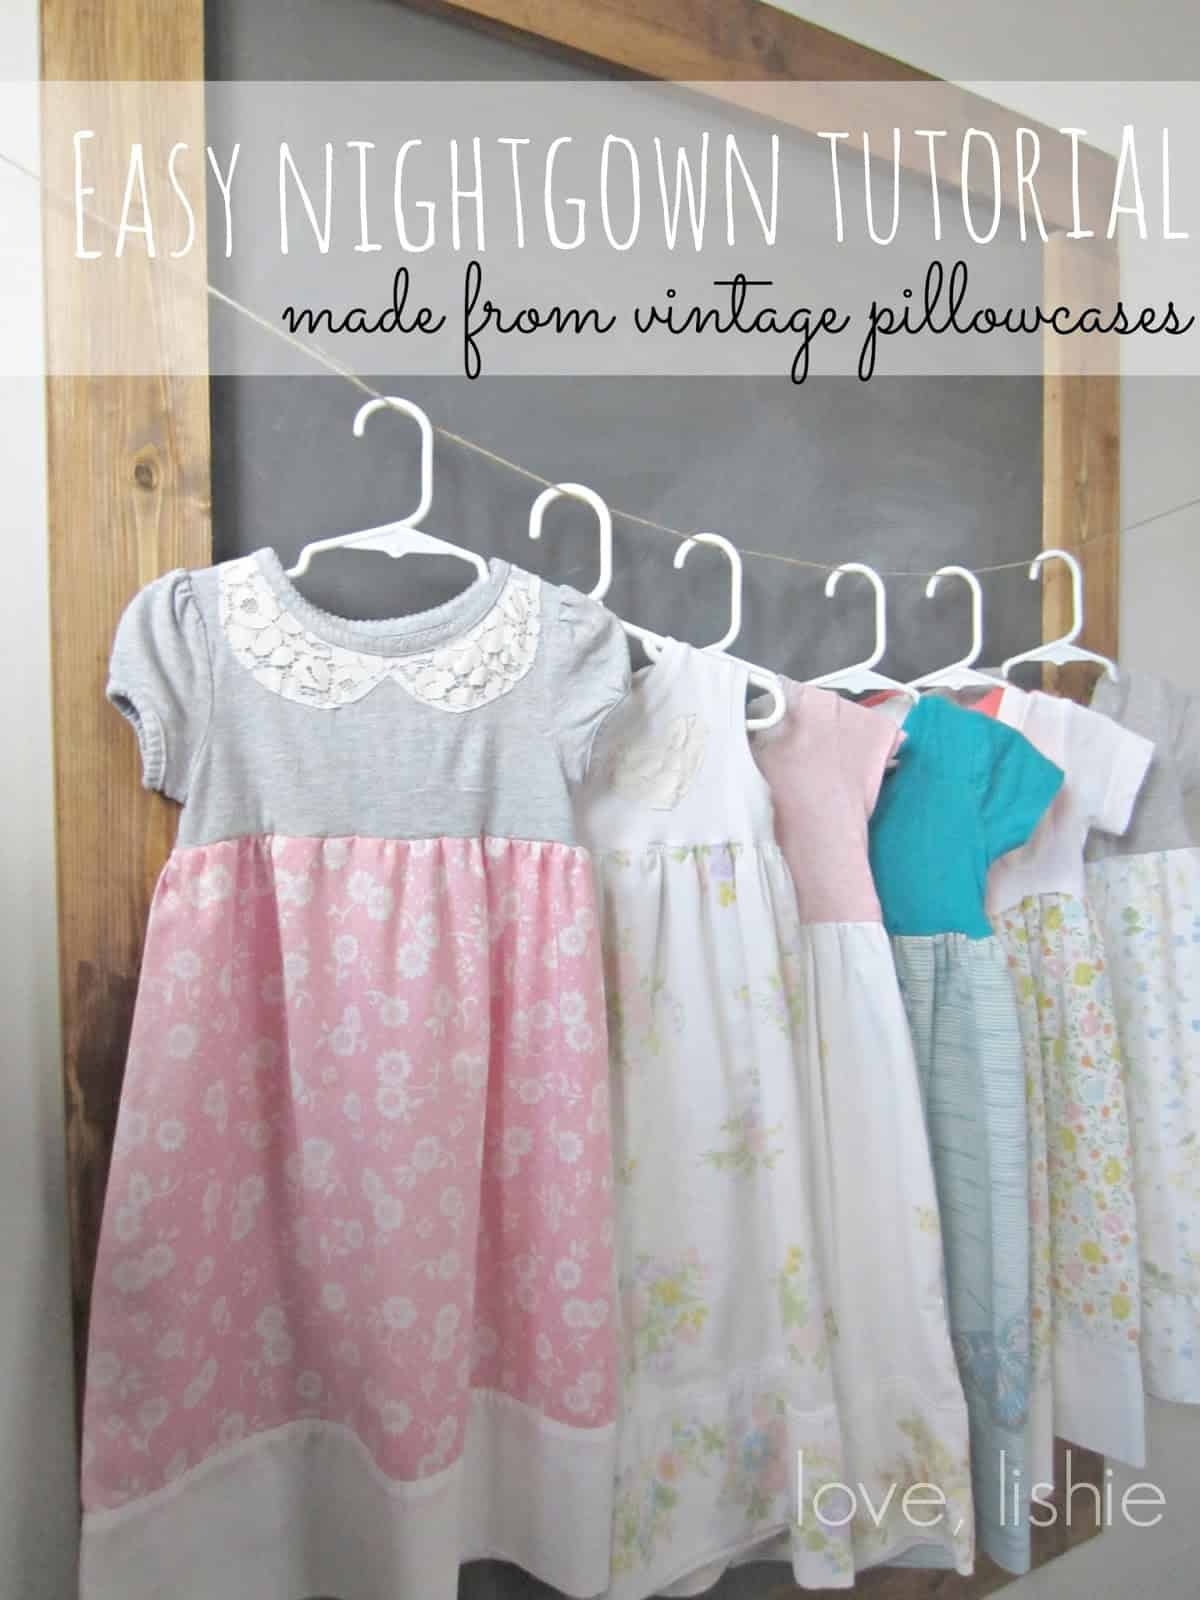 Easy nightgowns from a pillow case and a t-shirt